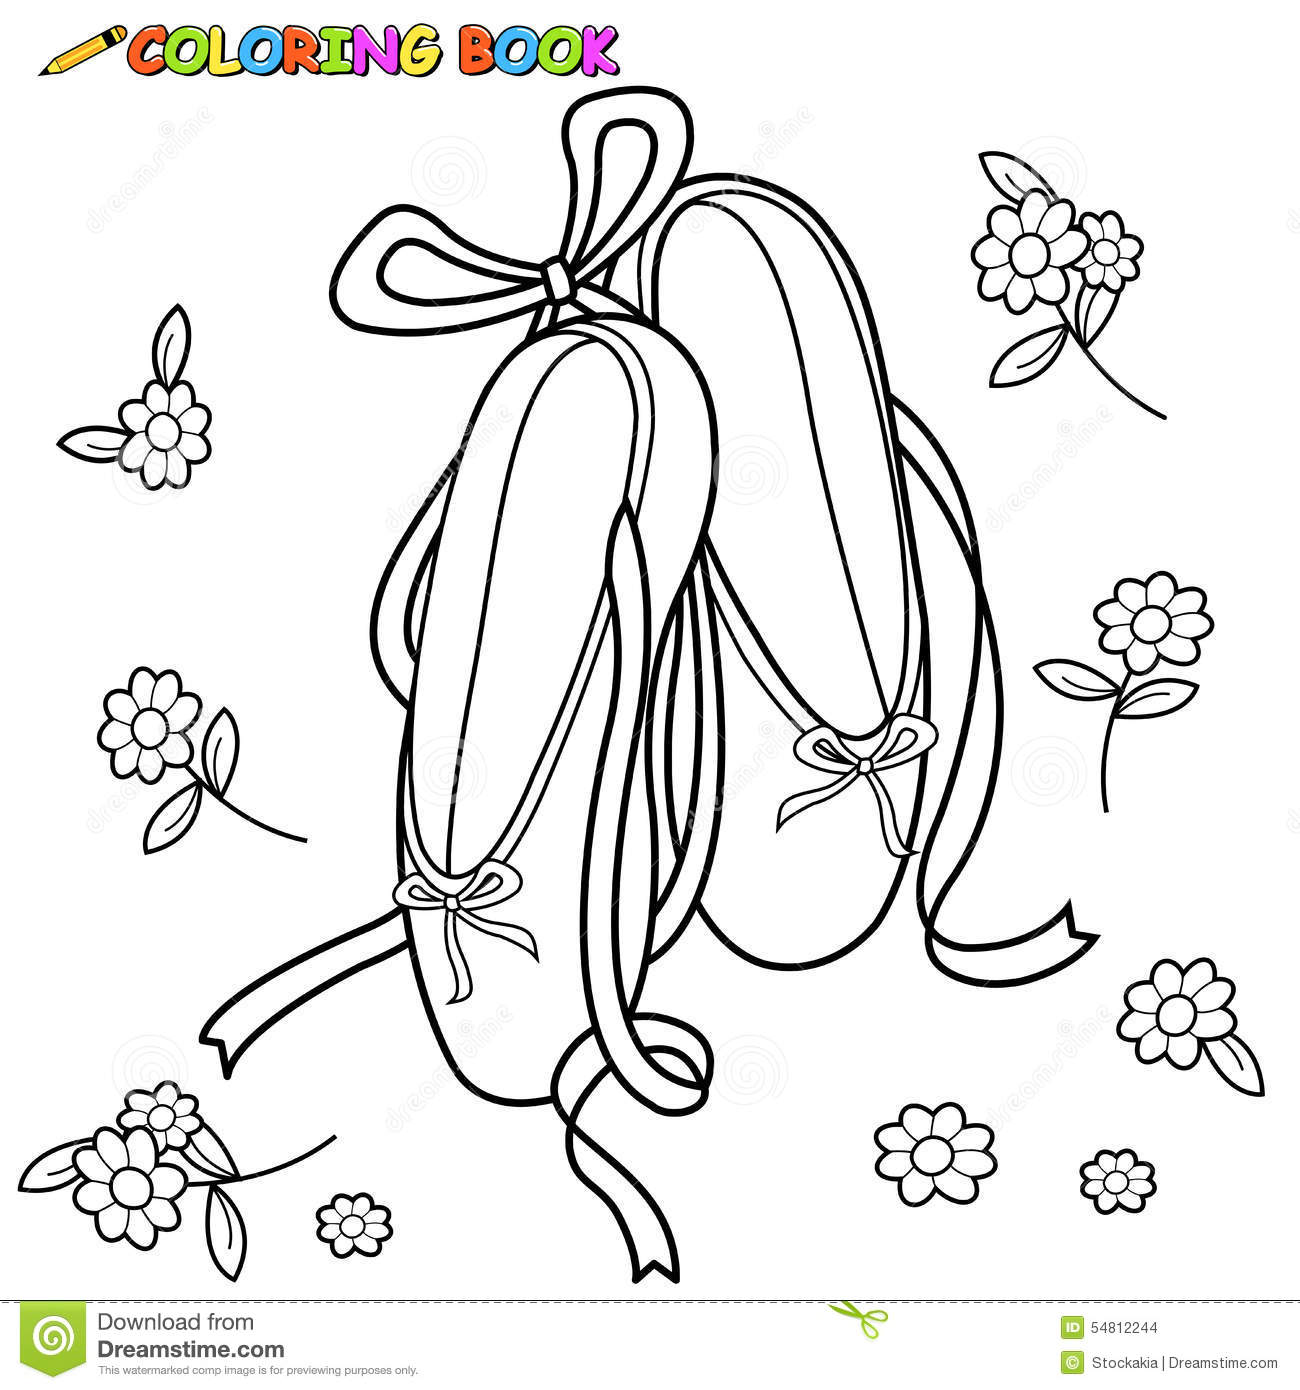 Ballet shoes coloring page stock vector. Illustration of slipper ...